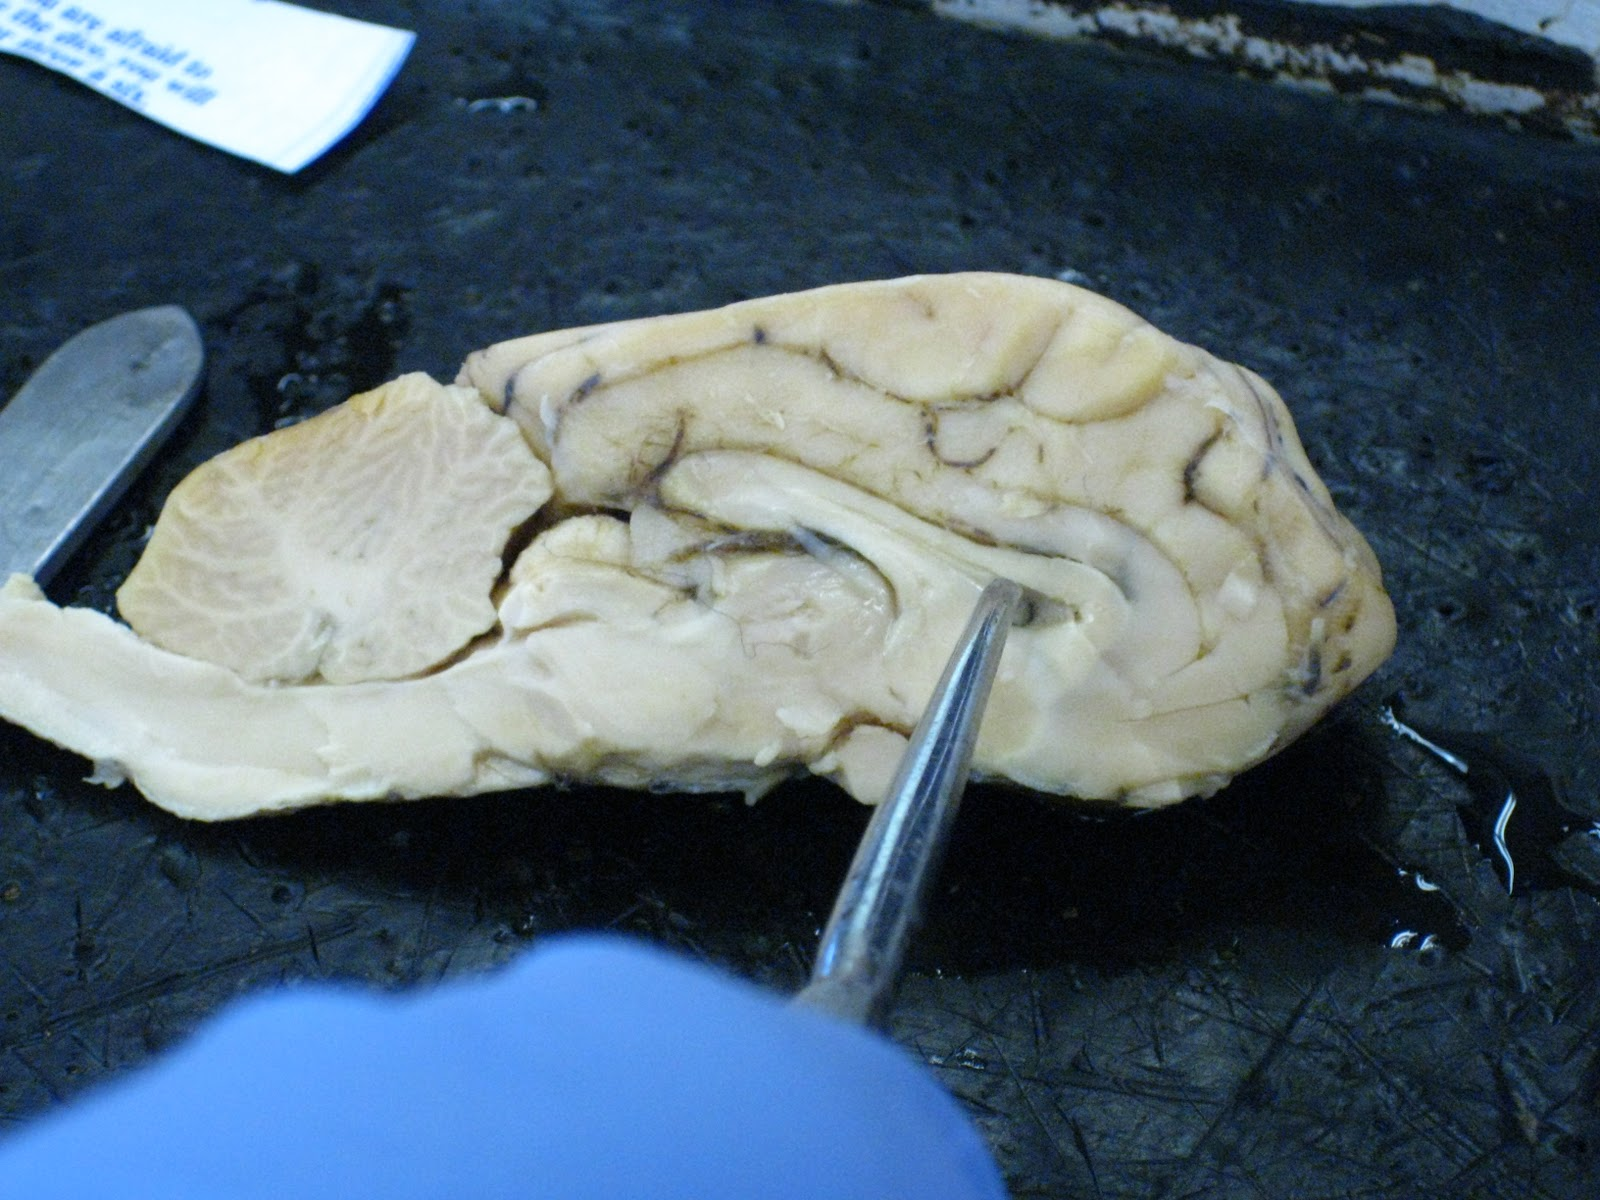 Sheep for Brains: Sheep Brain - Internal gross anatomy